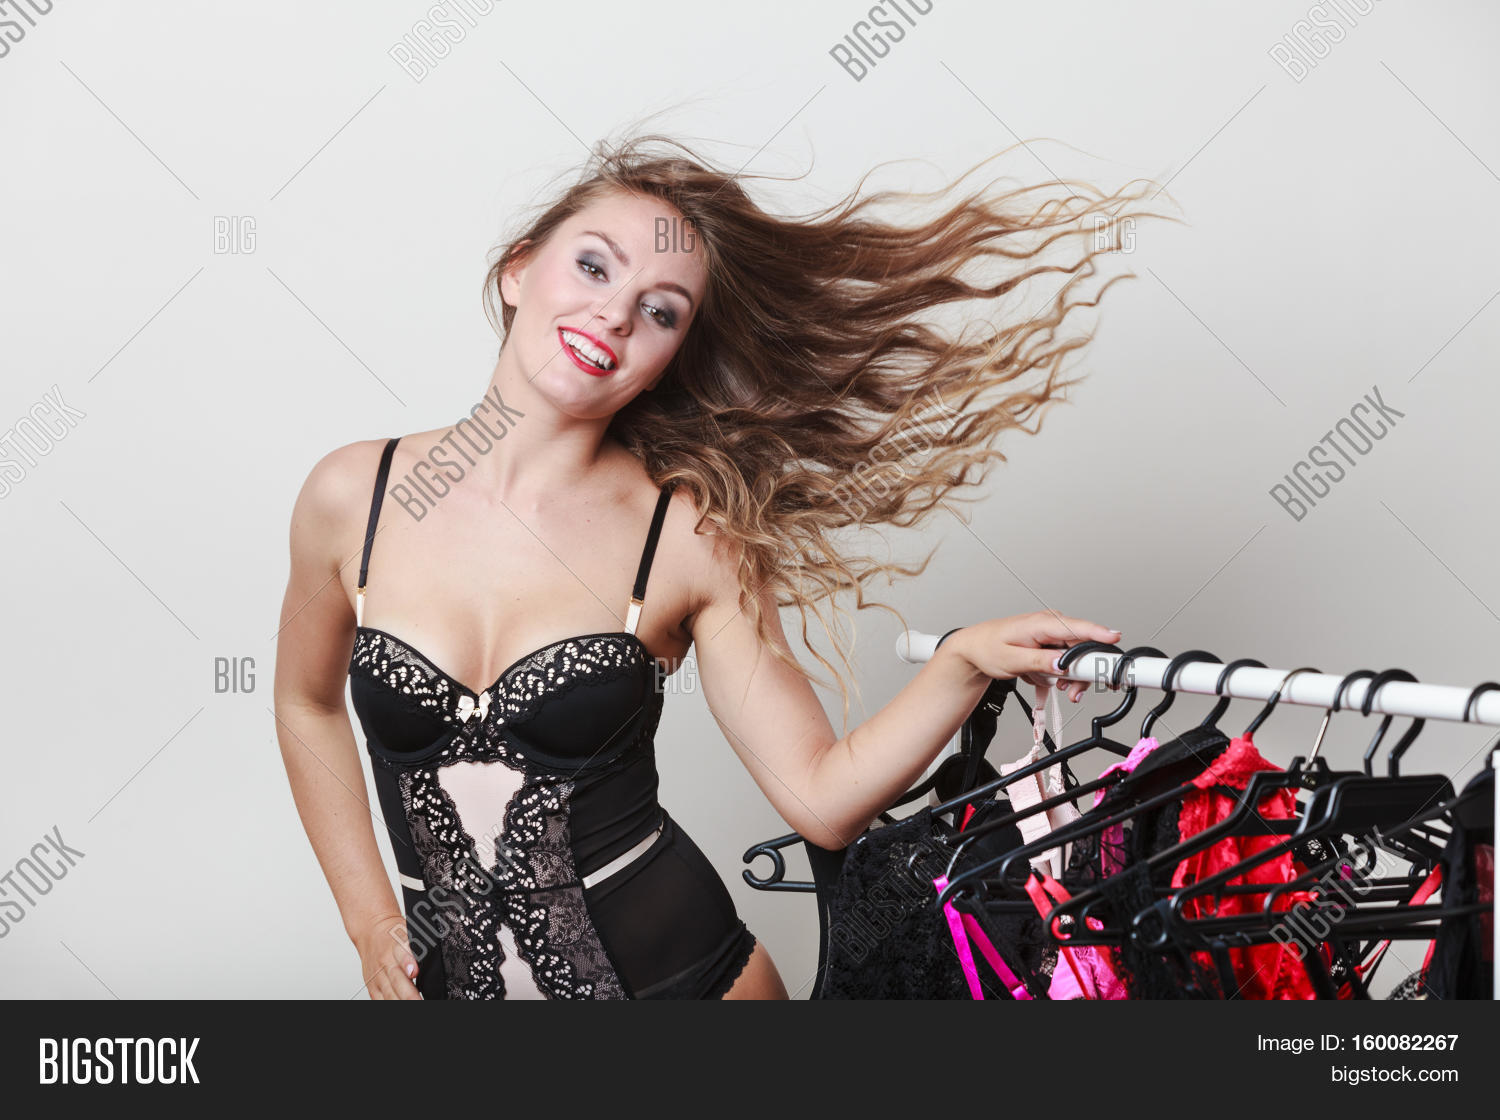 ef108dadd 🔥 Expressive Sexy Lady With Collection Of Lingerie.